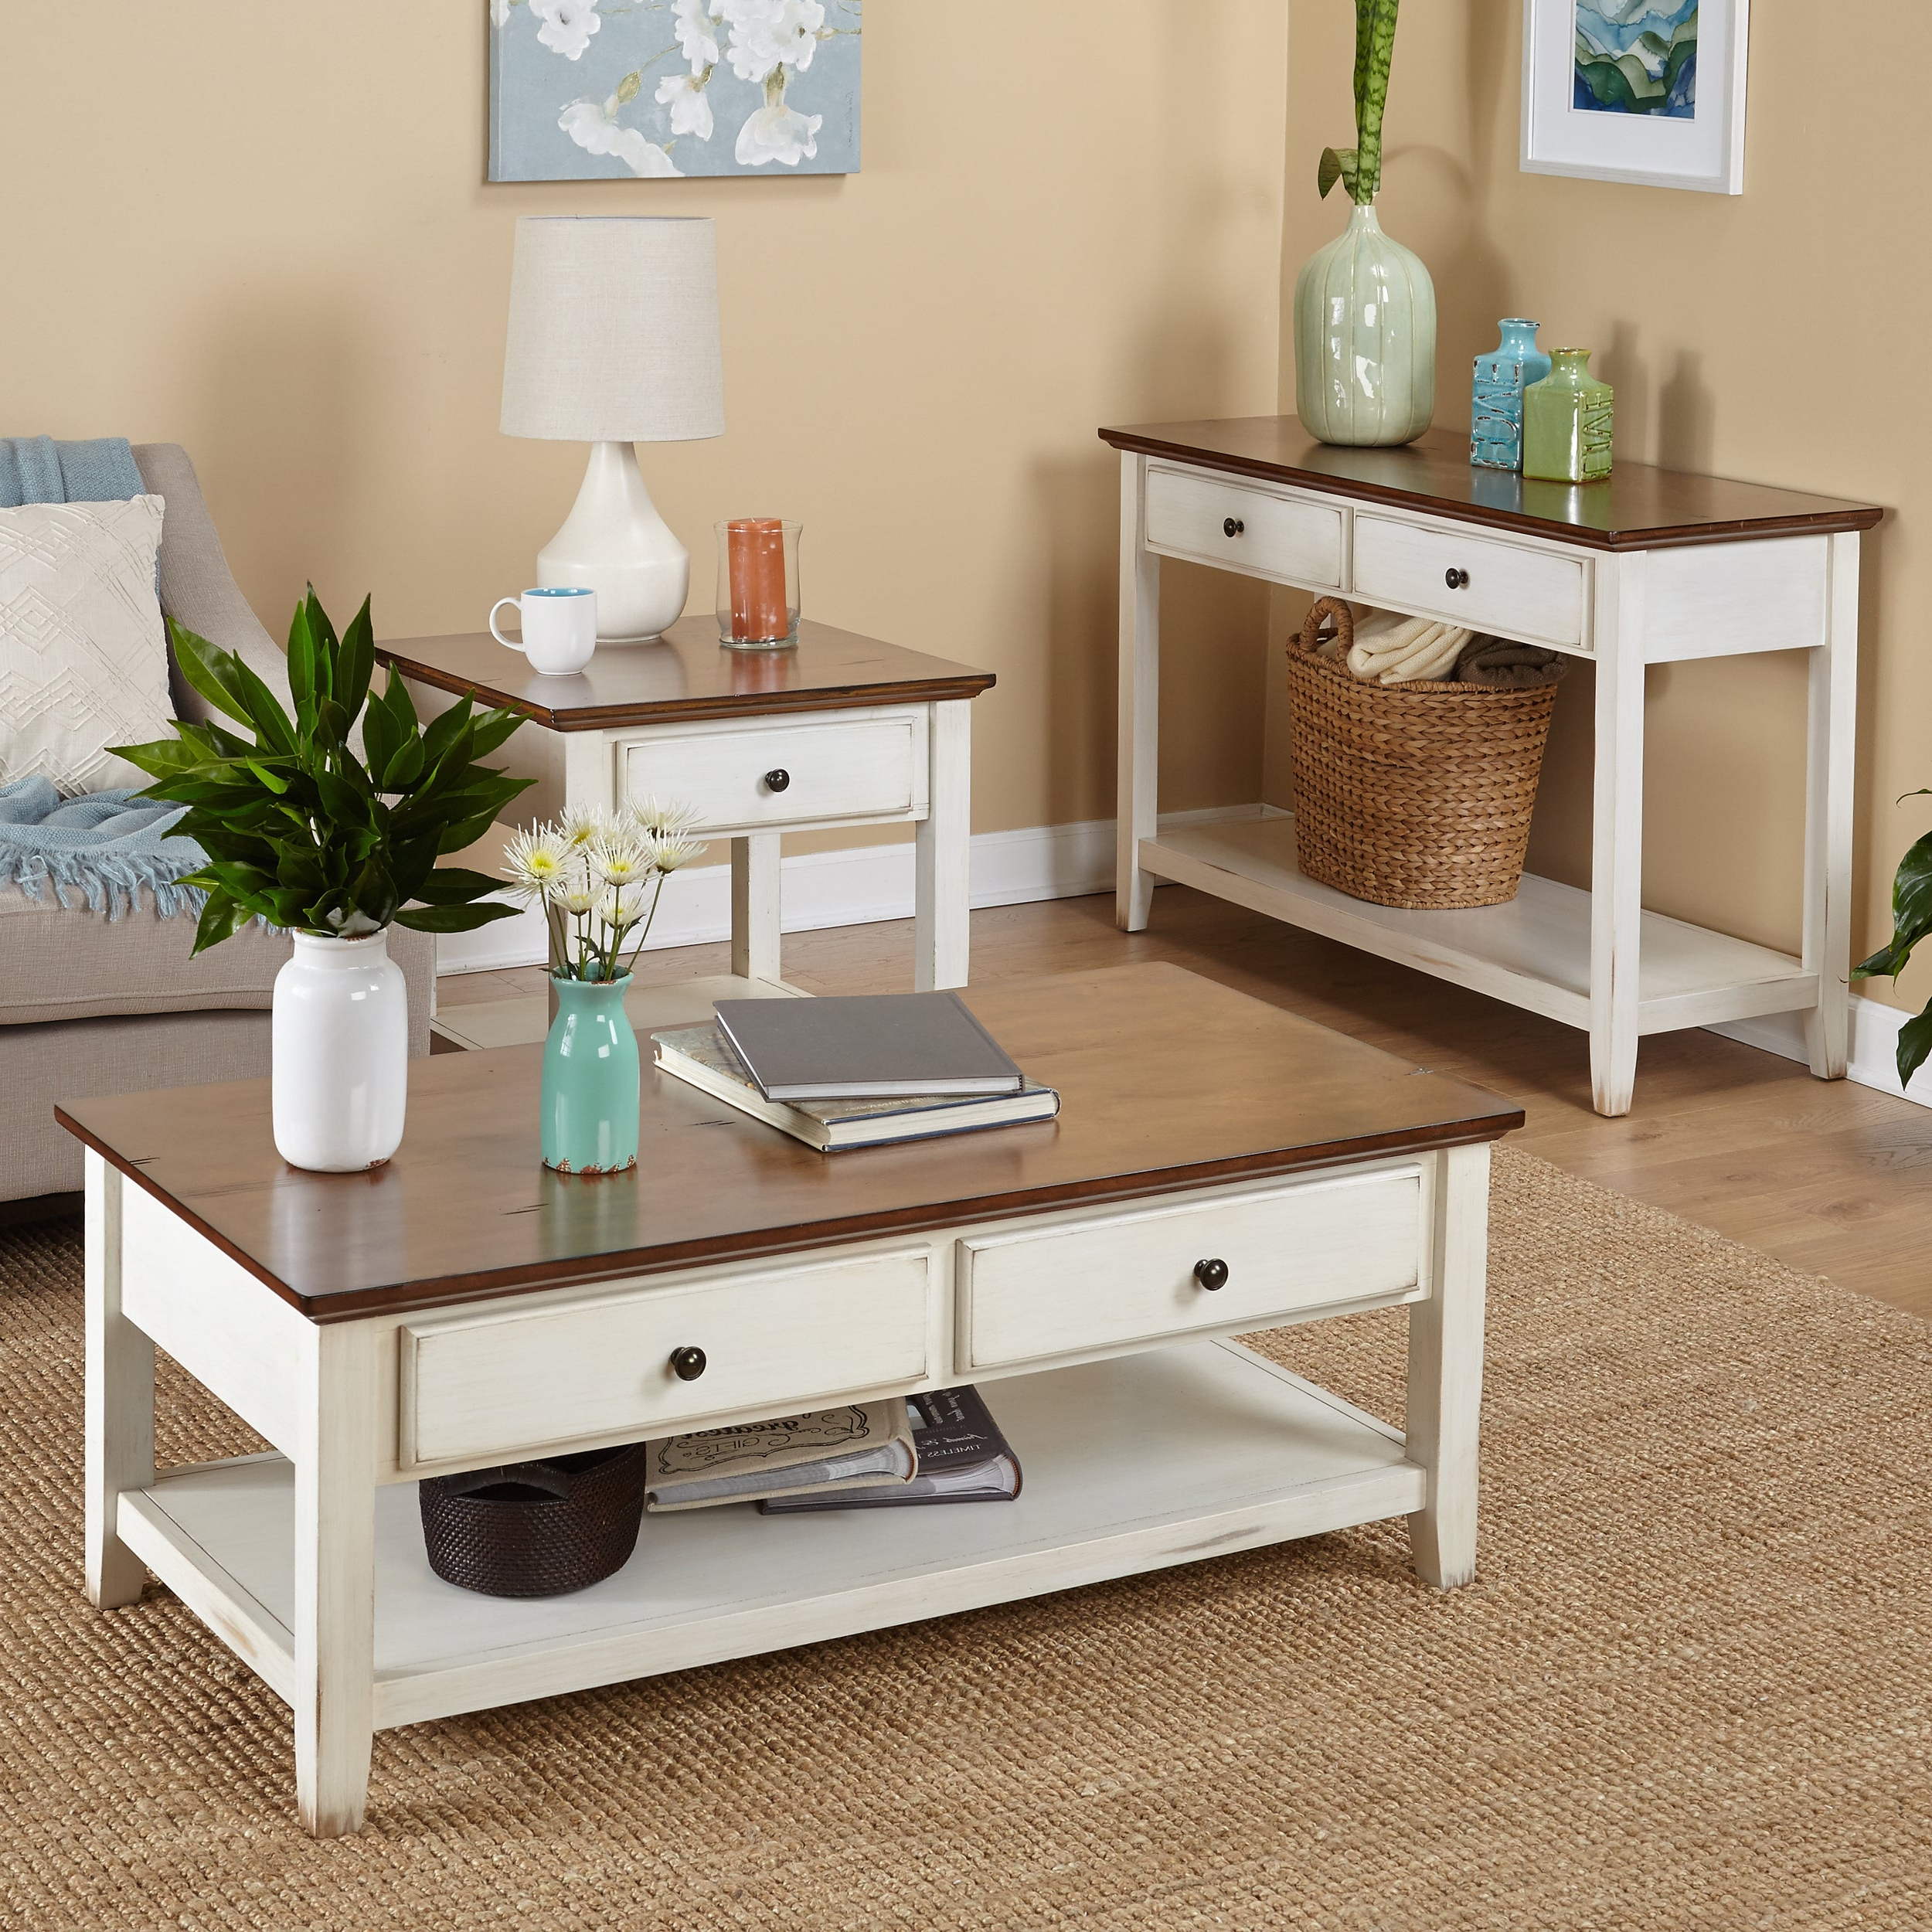 """2020 Simple Living Charleston Coffee Tables Regarding Simple Living Charleston Coffee Table – 18.1""""h X 47.6""""w X 23.6""""d (Gallery 2 of 20)"""